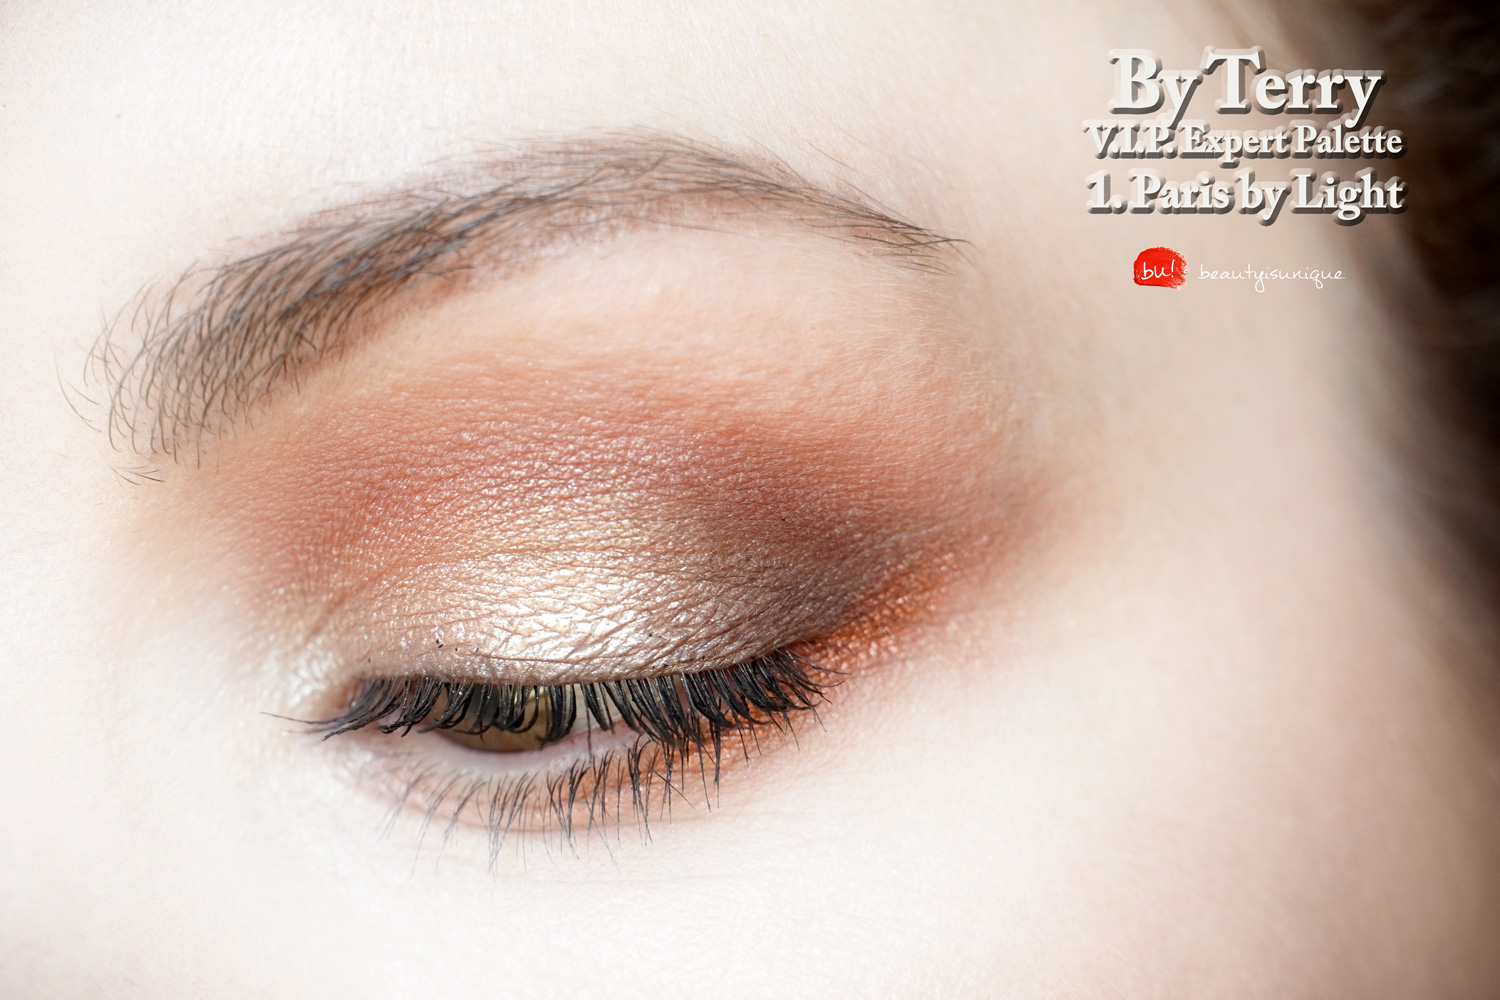 by-terry-vip-expert-palette-paris-by-light-swatches